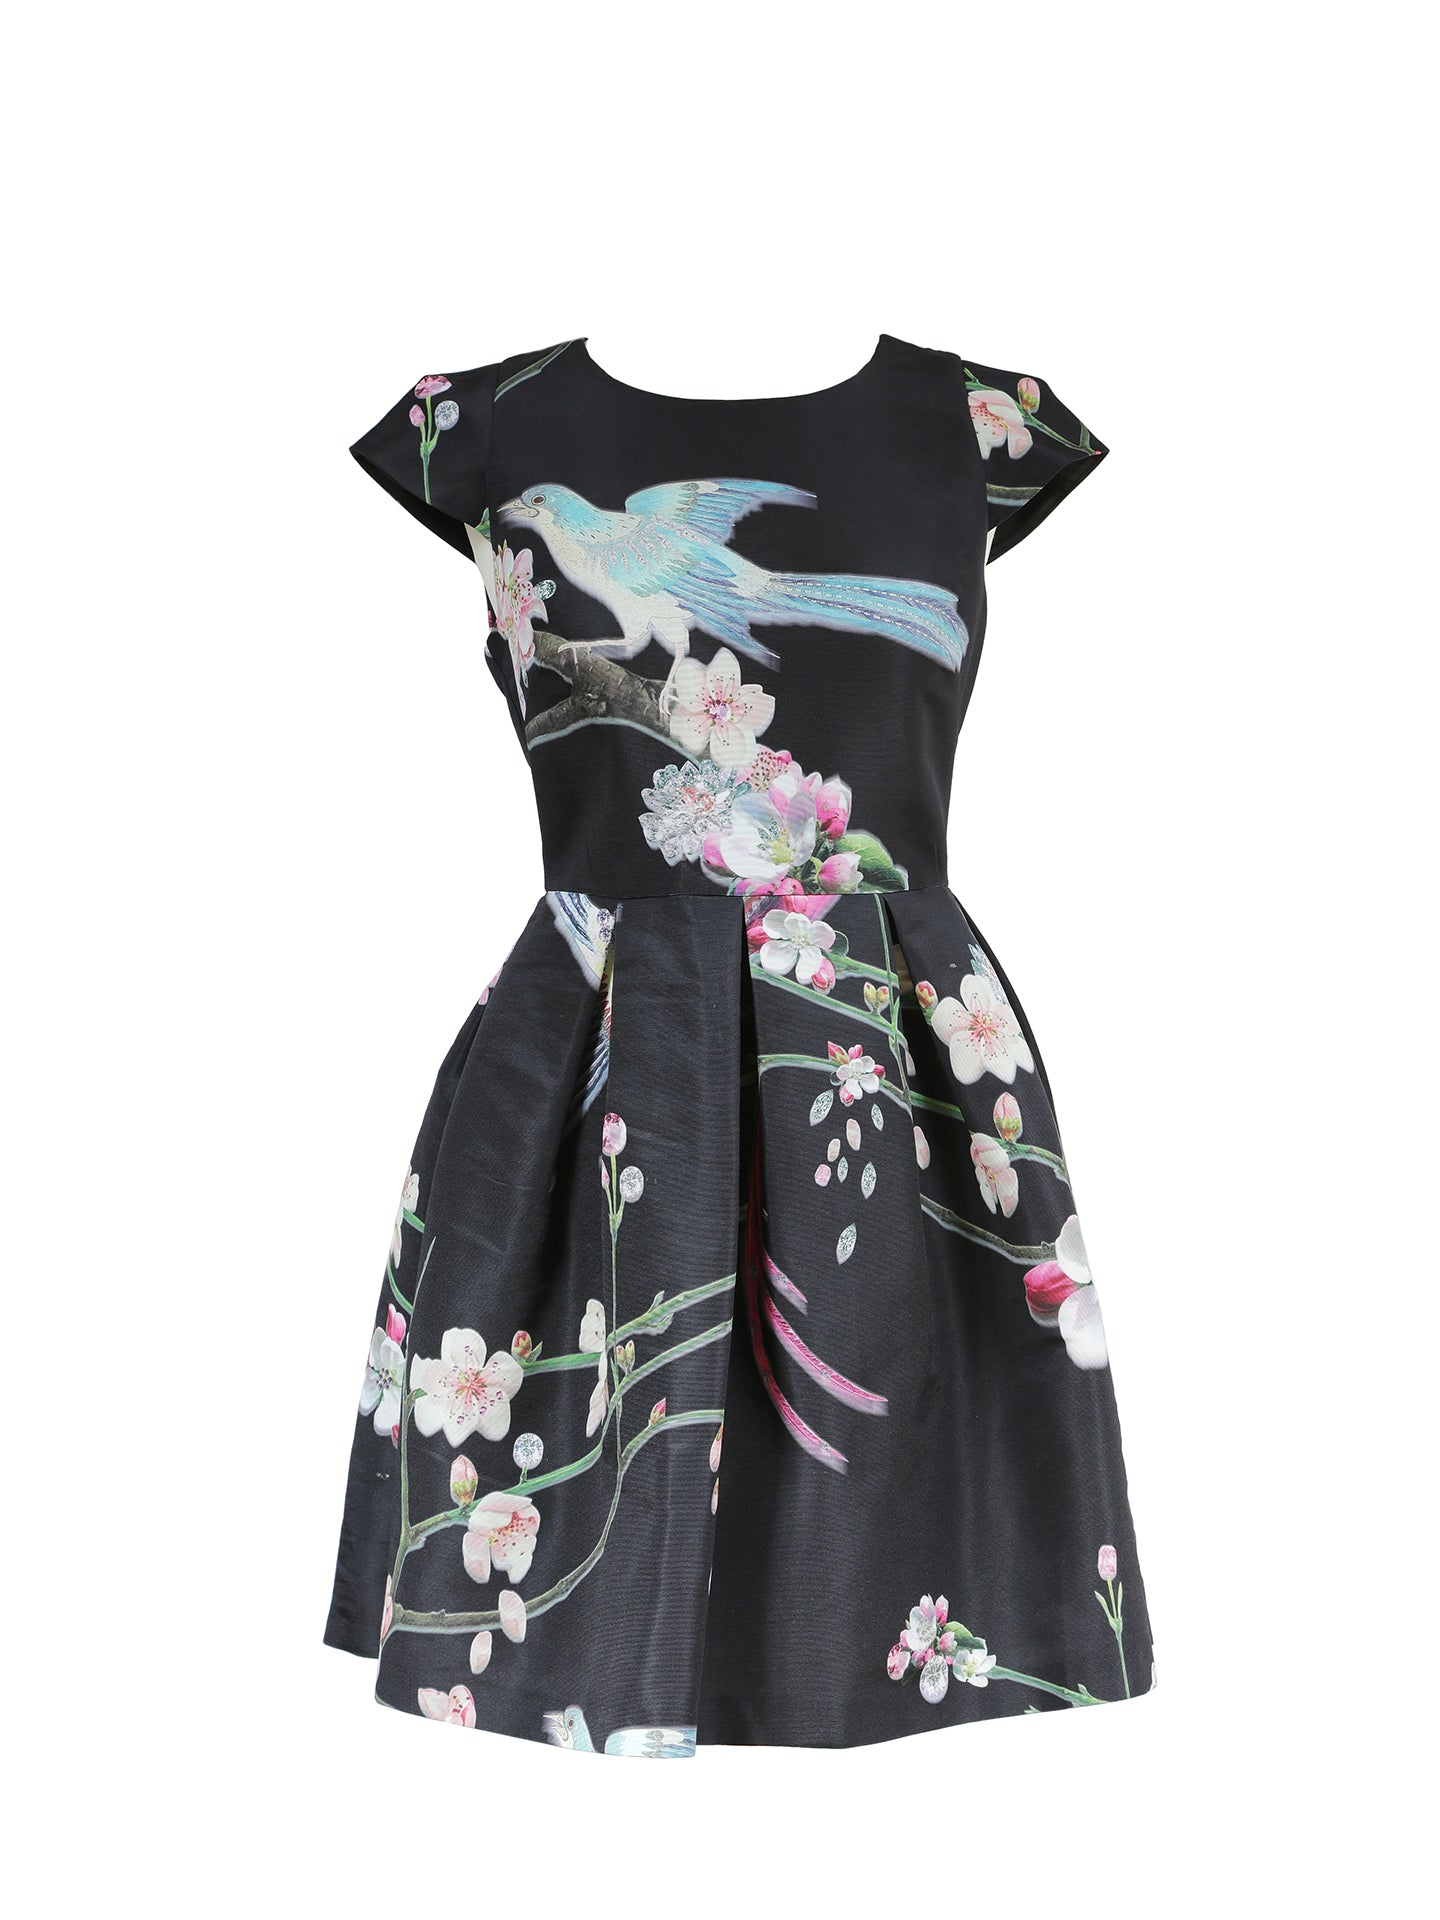 Ted Baker Bird and Flower Dress Size 34 (EU)